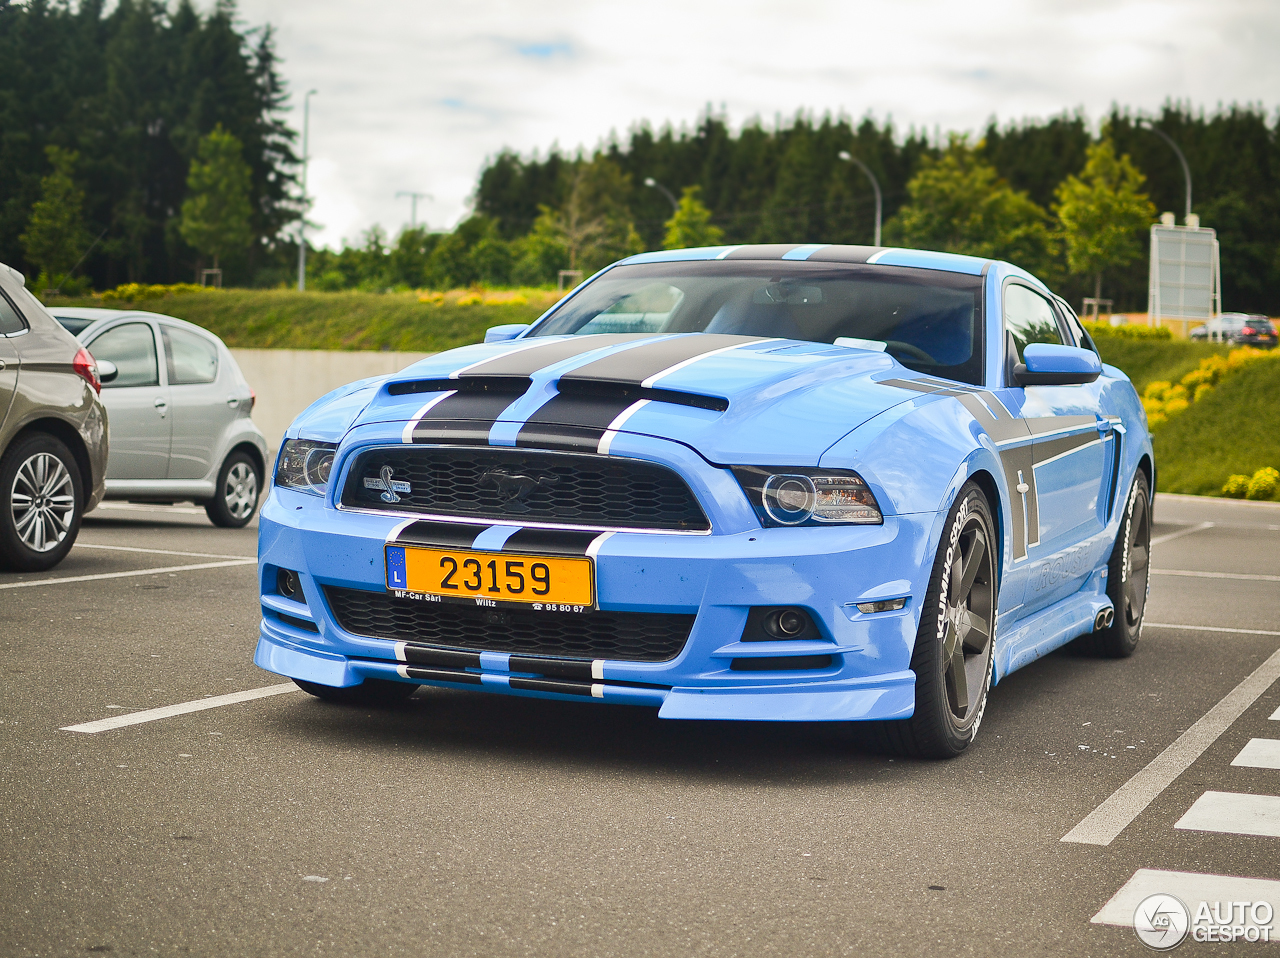 ford mustang shelby gt 500 supersnake 2013 1 augustus 2016 autogespot. Black Bedroom Furniture Sets. Home Design Ideas